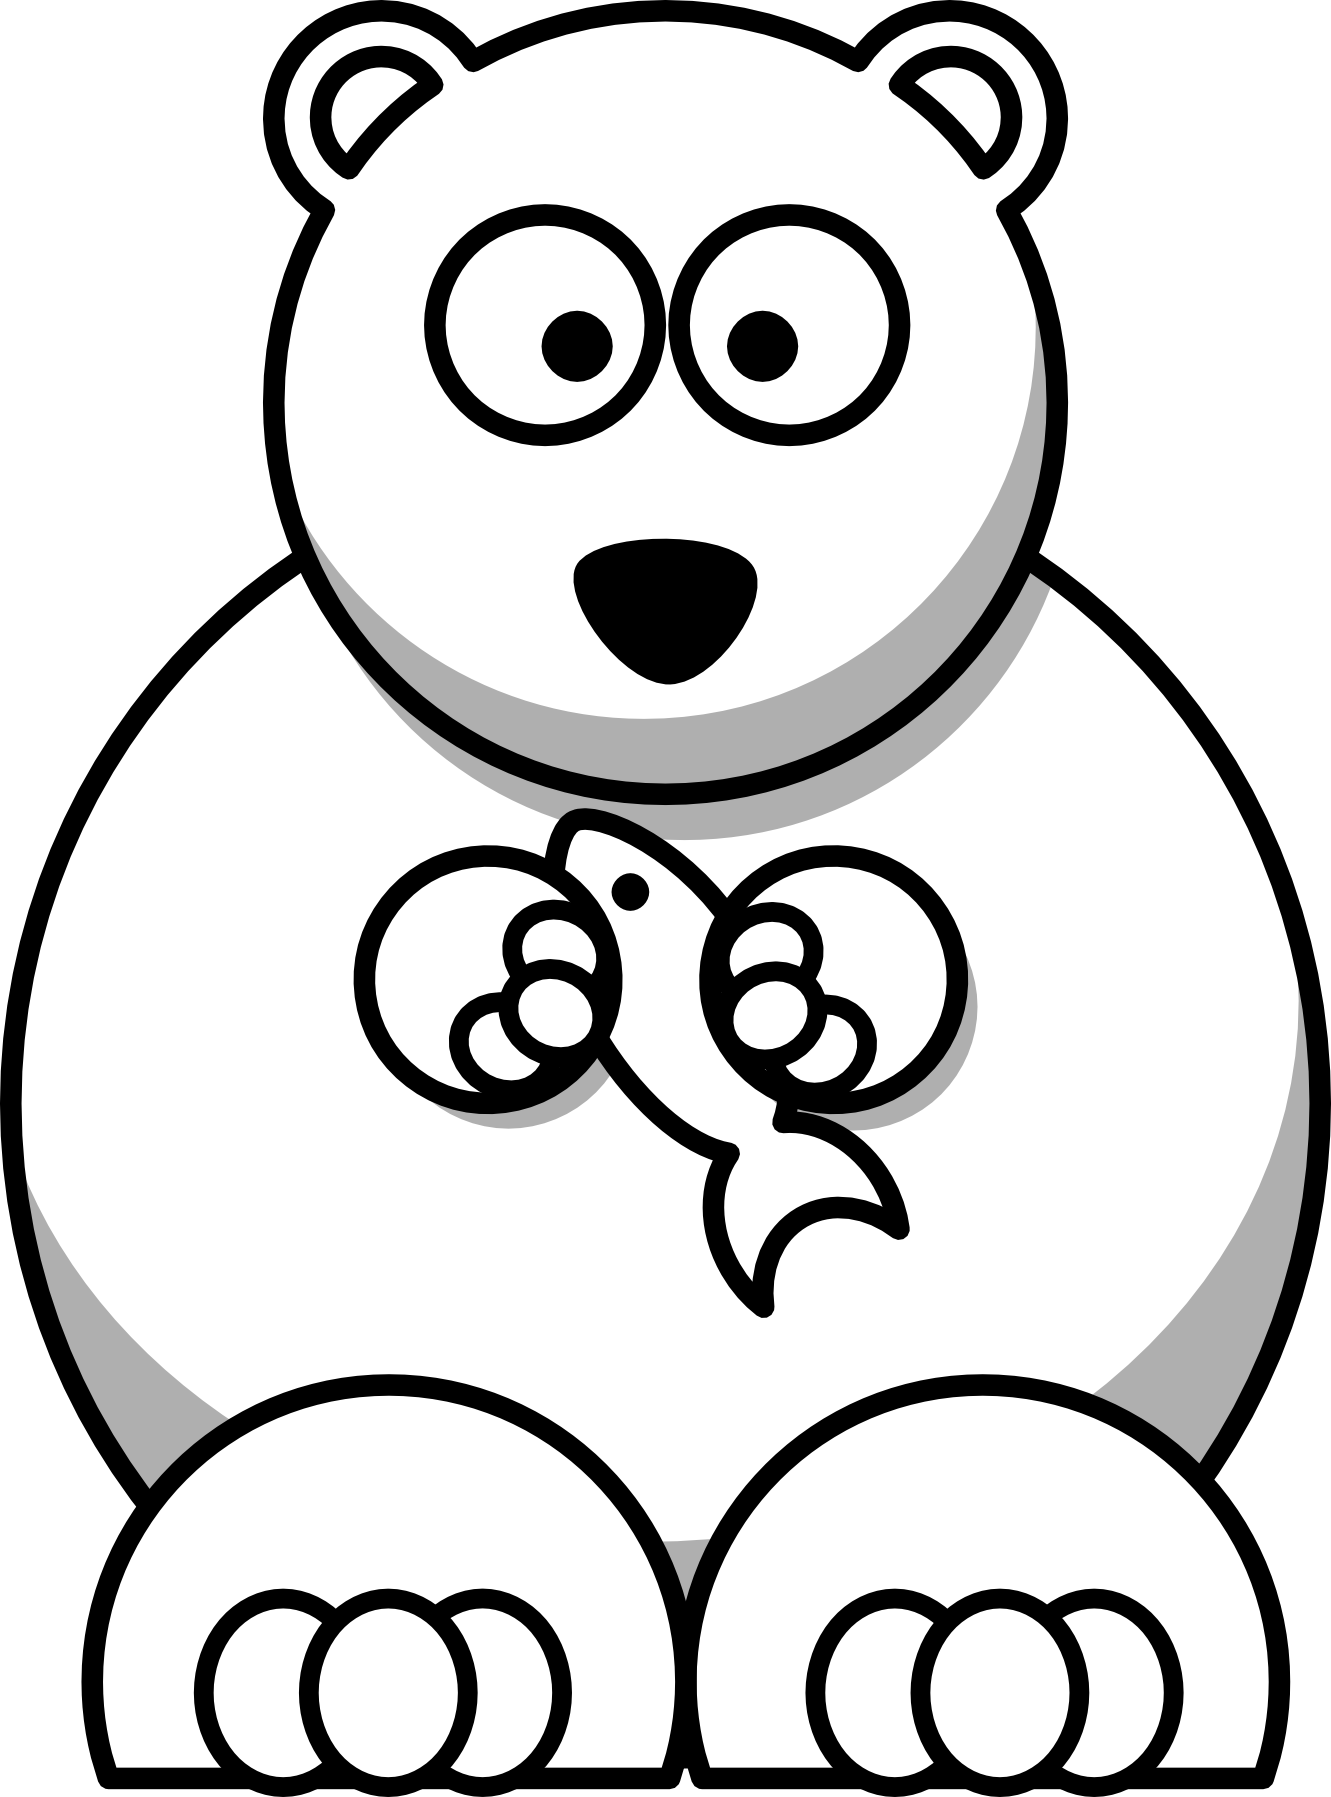 Cartoon Polar Bear Coloring Pages | Cincess | Pinterest | Polar bear ...